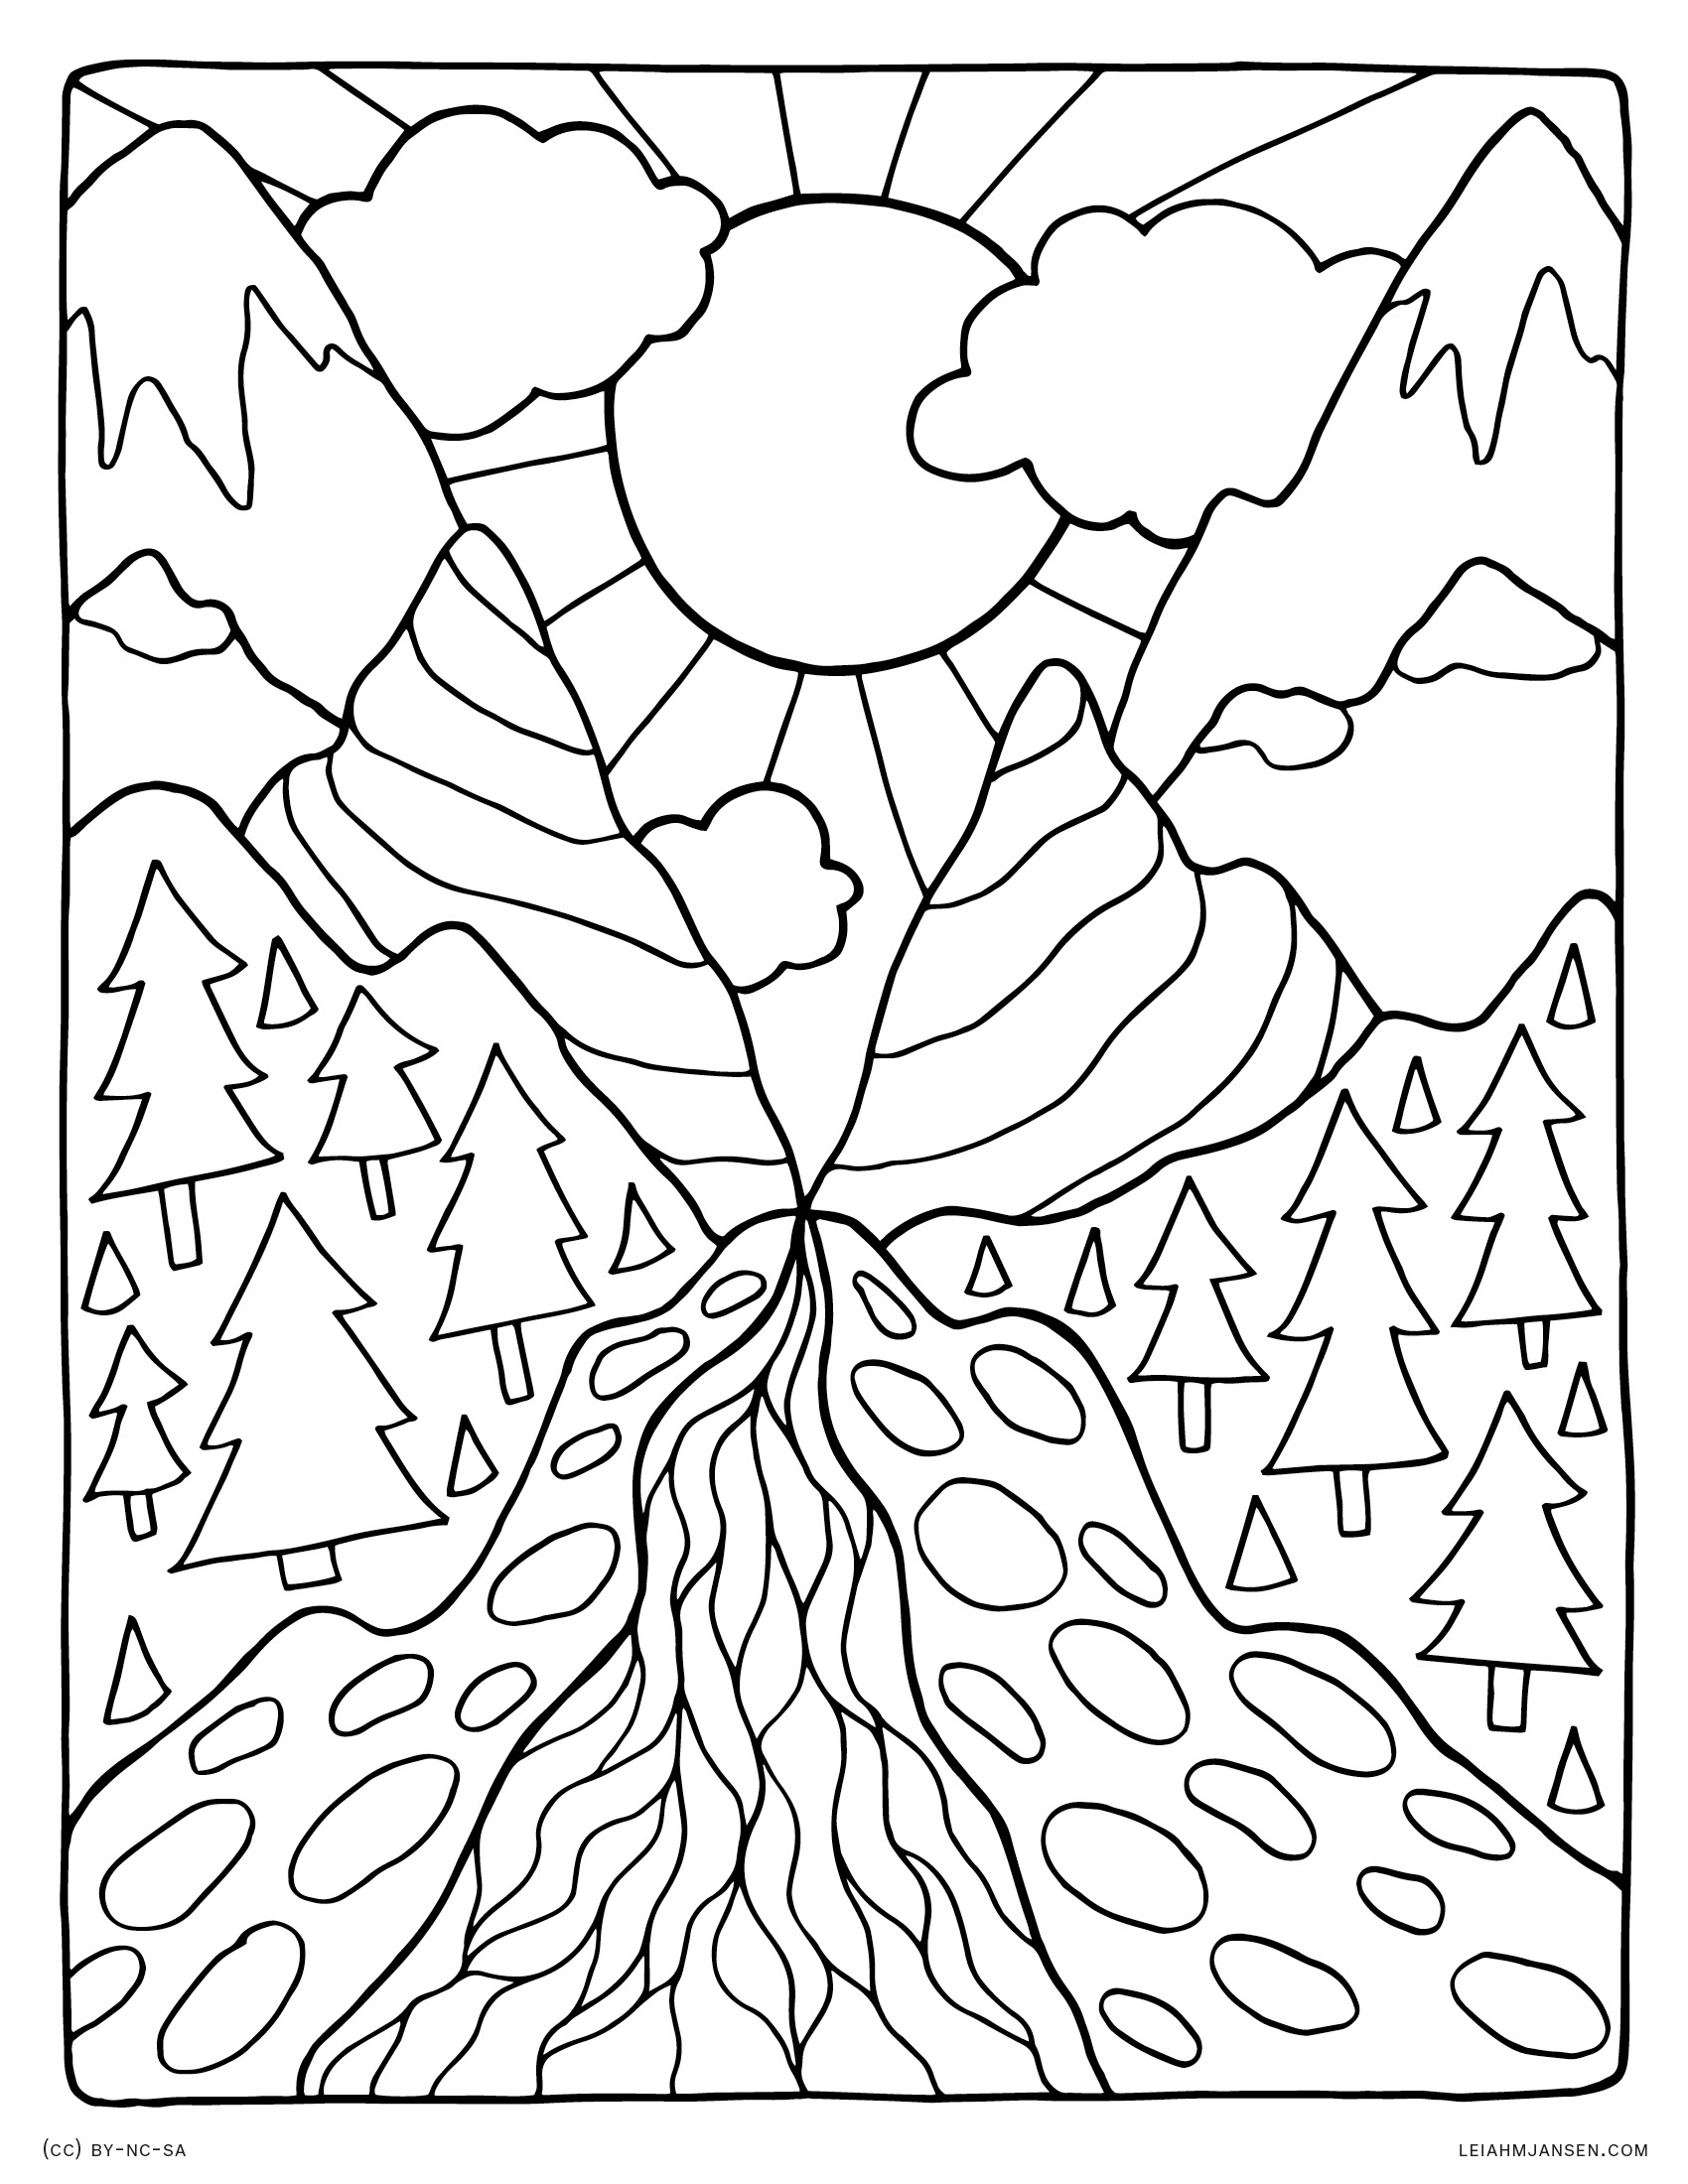 nature scene nature coloring pages free printable nature coloring pages for kids best pages coloring scene nature nature